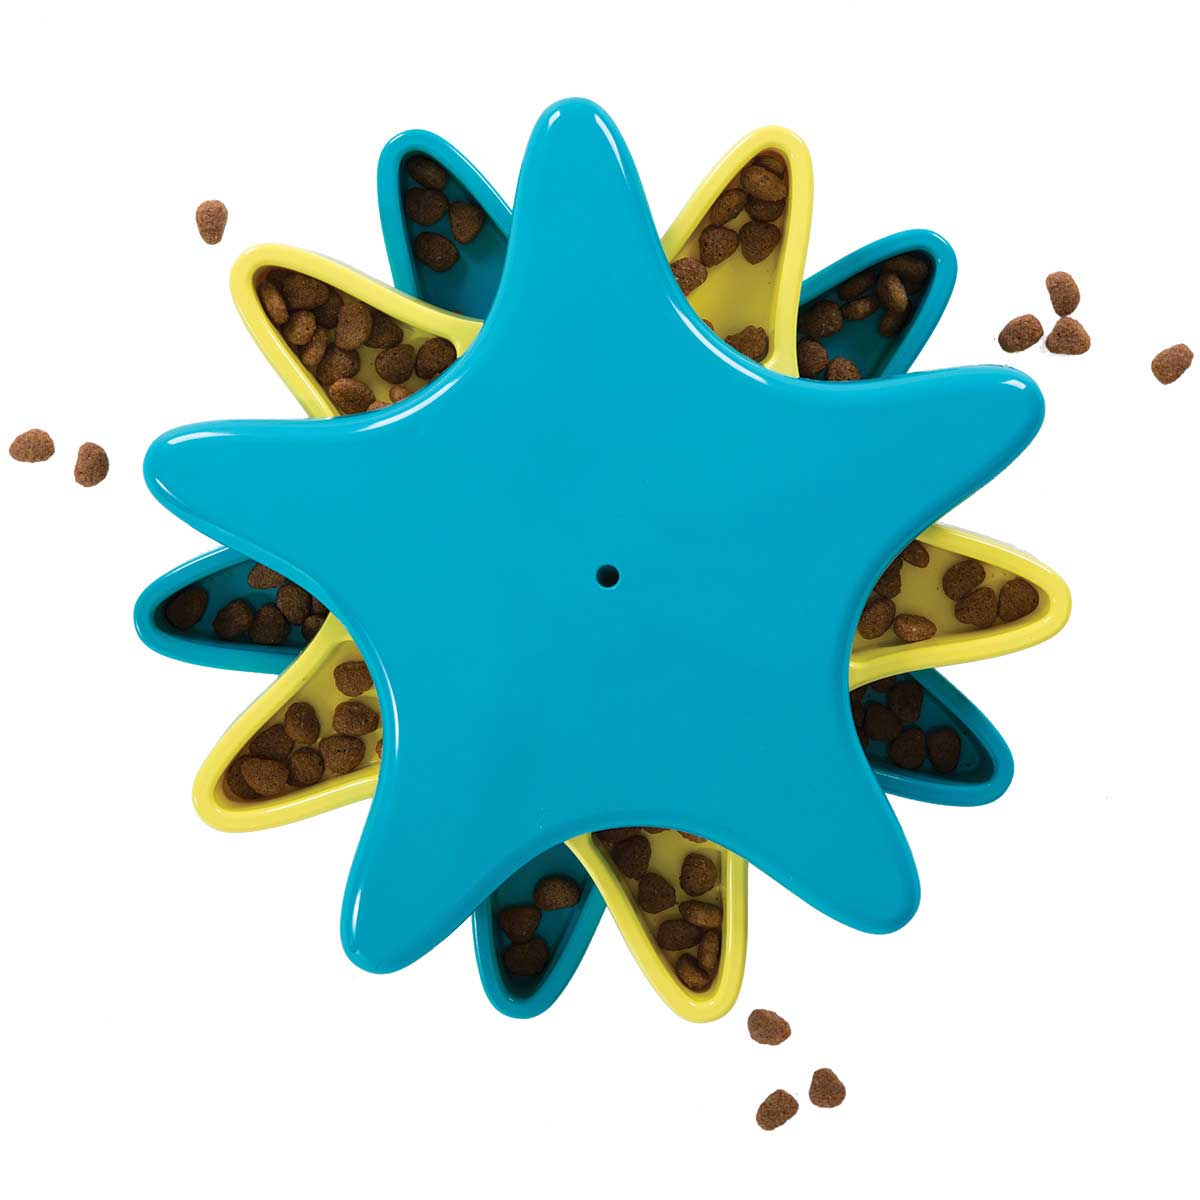 Outward Hound Star Spinner Game for Dogs - Dispenses Food and Treats